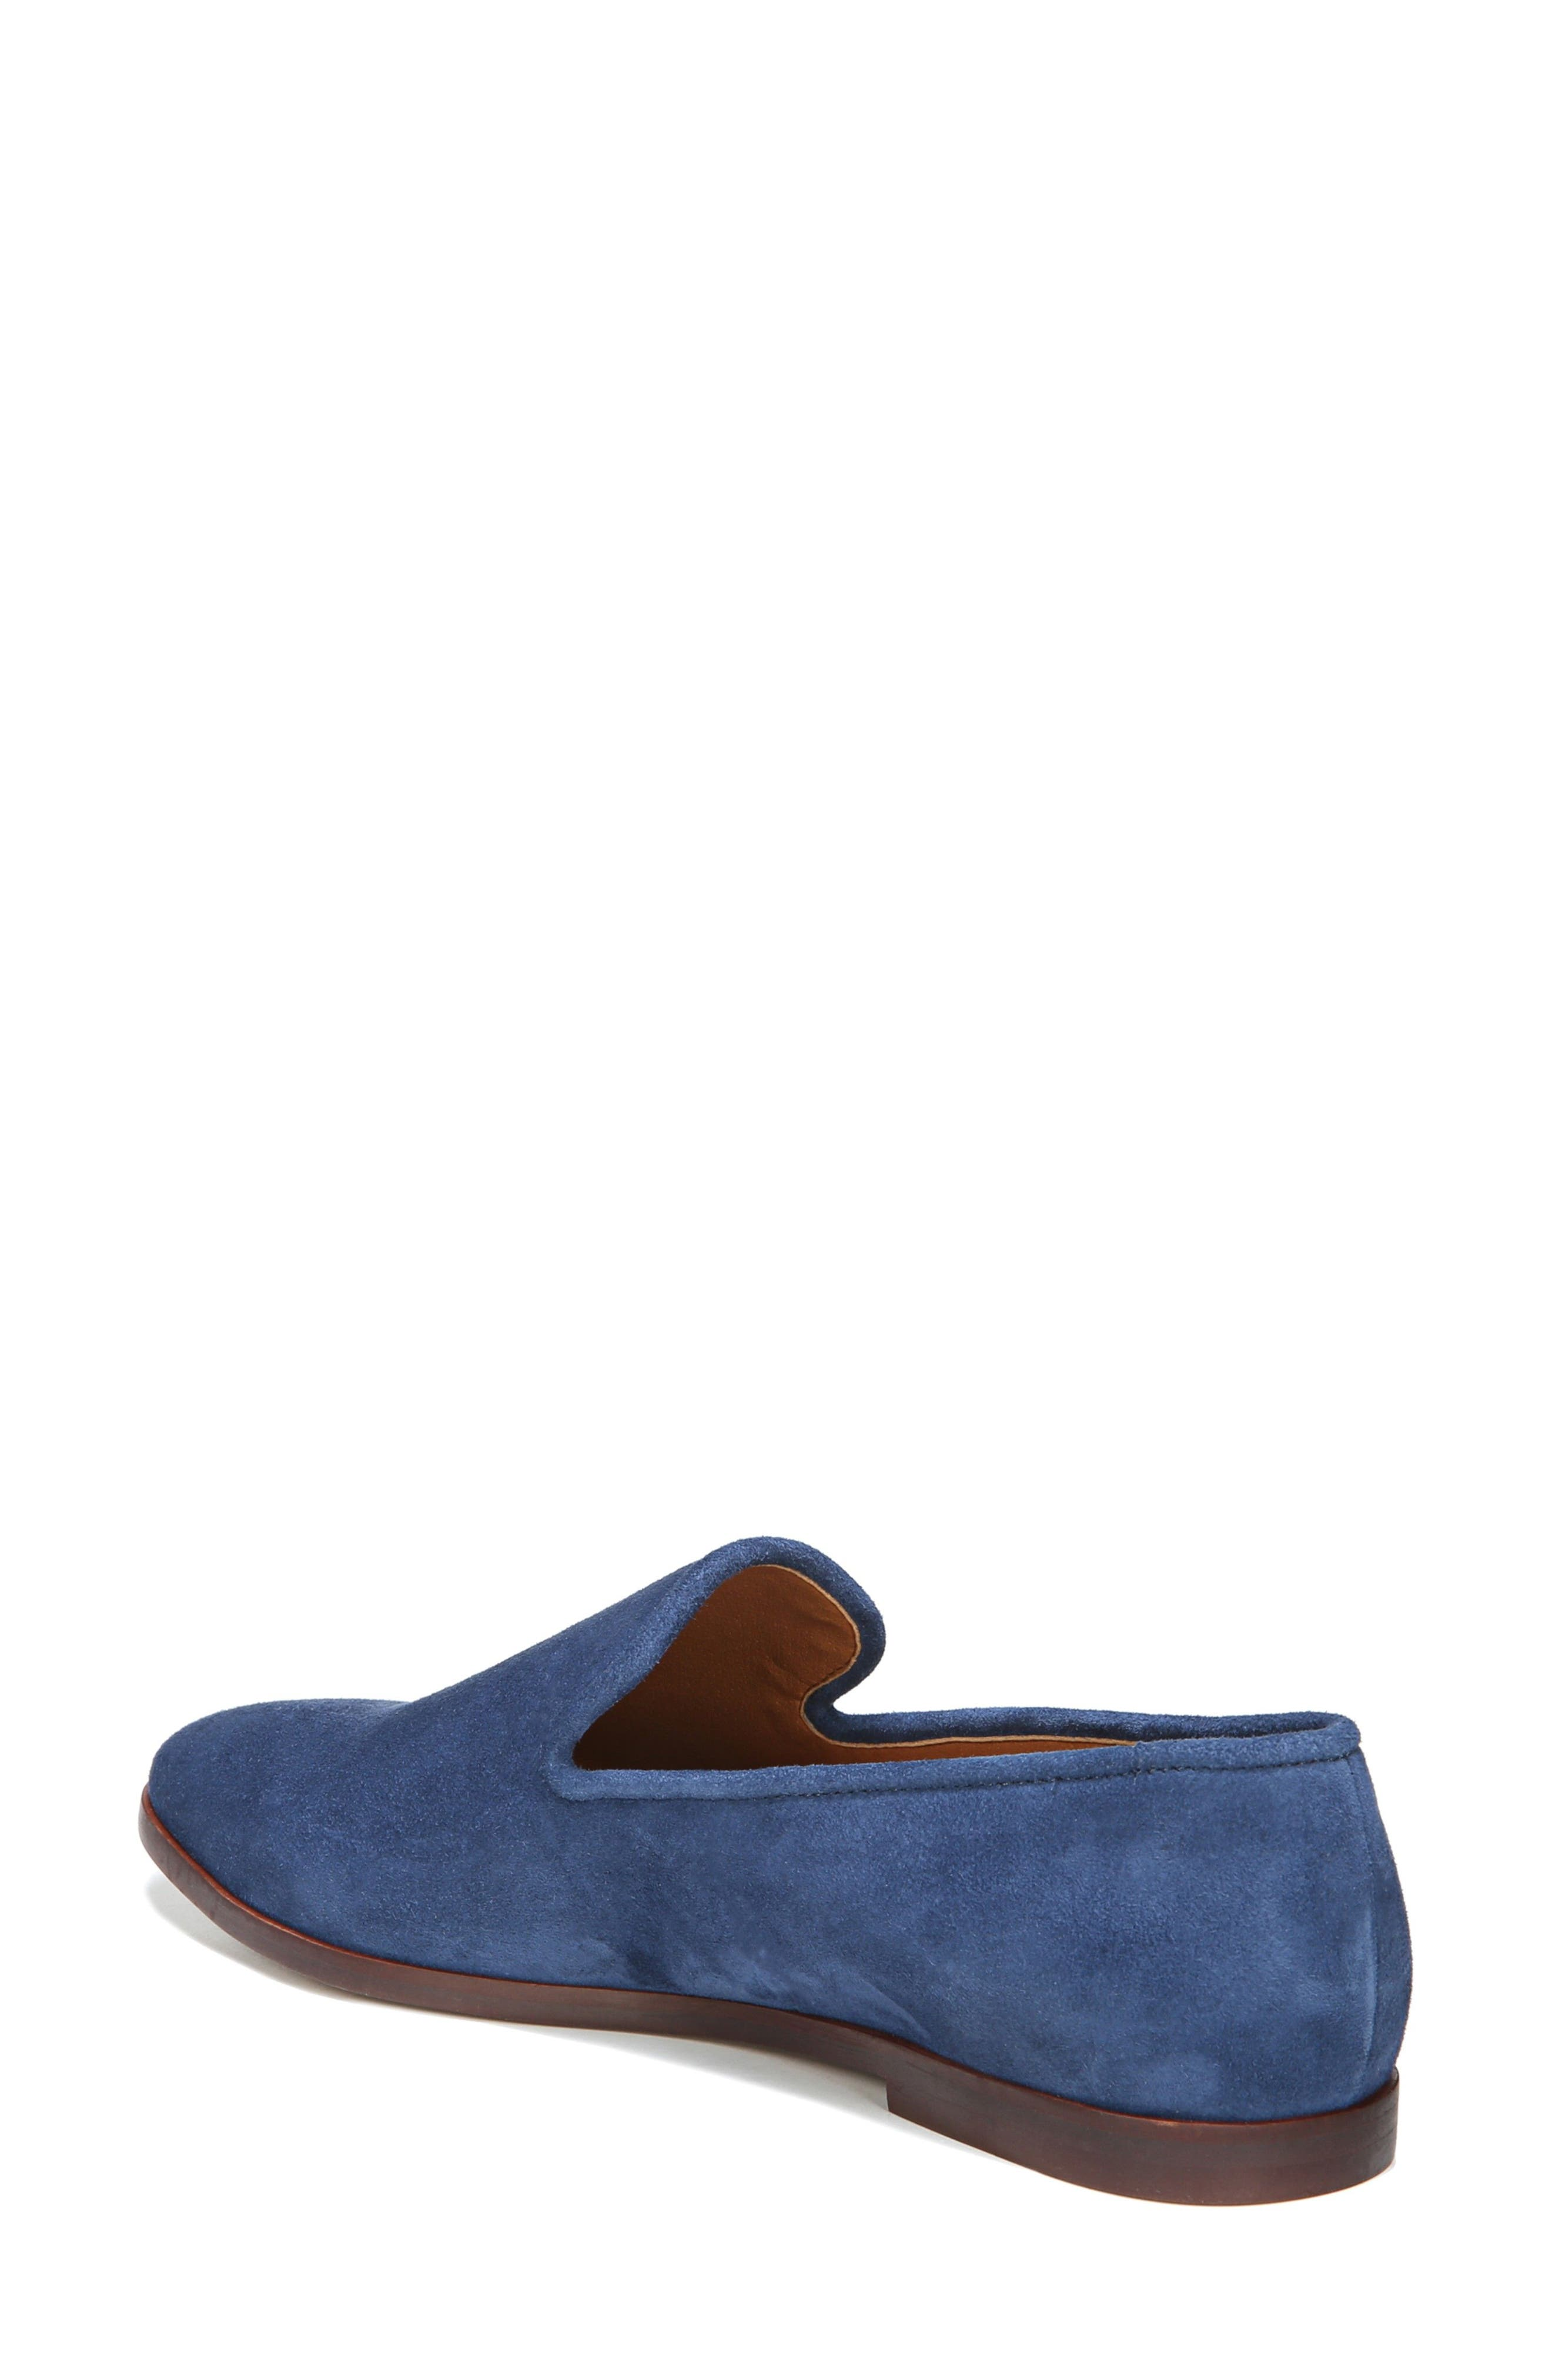 Ayers Loafer Flat,                             Alternate thumbnail 14, color,